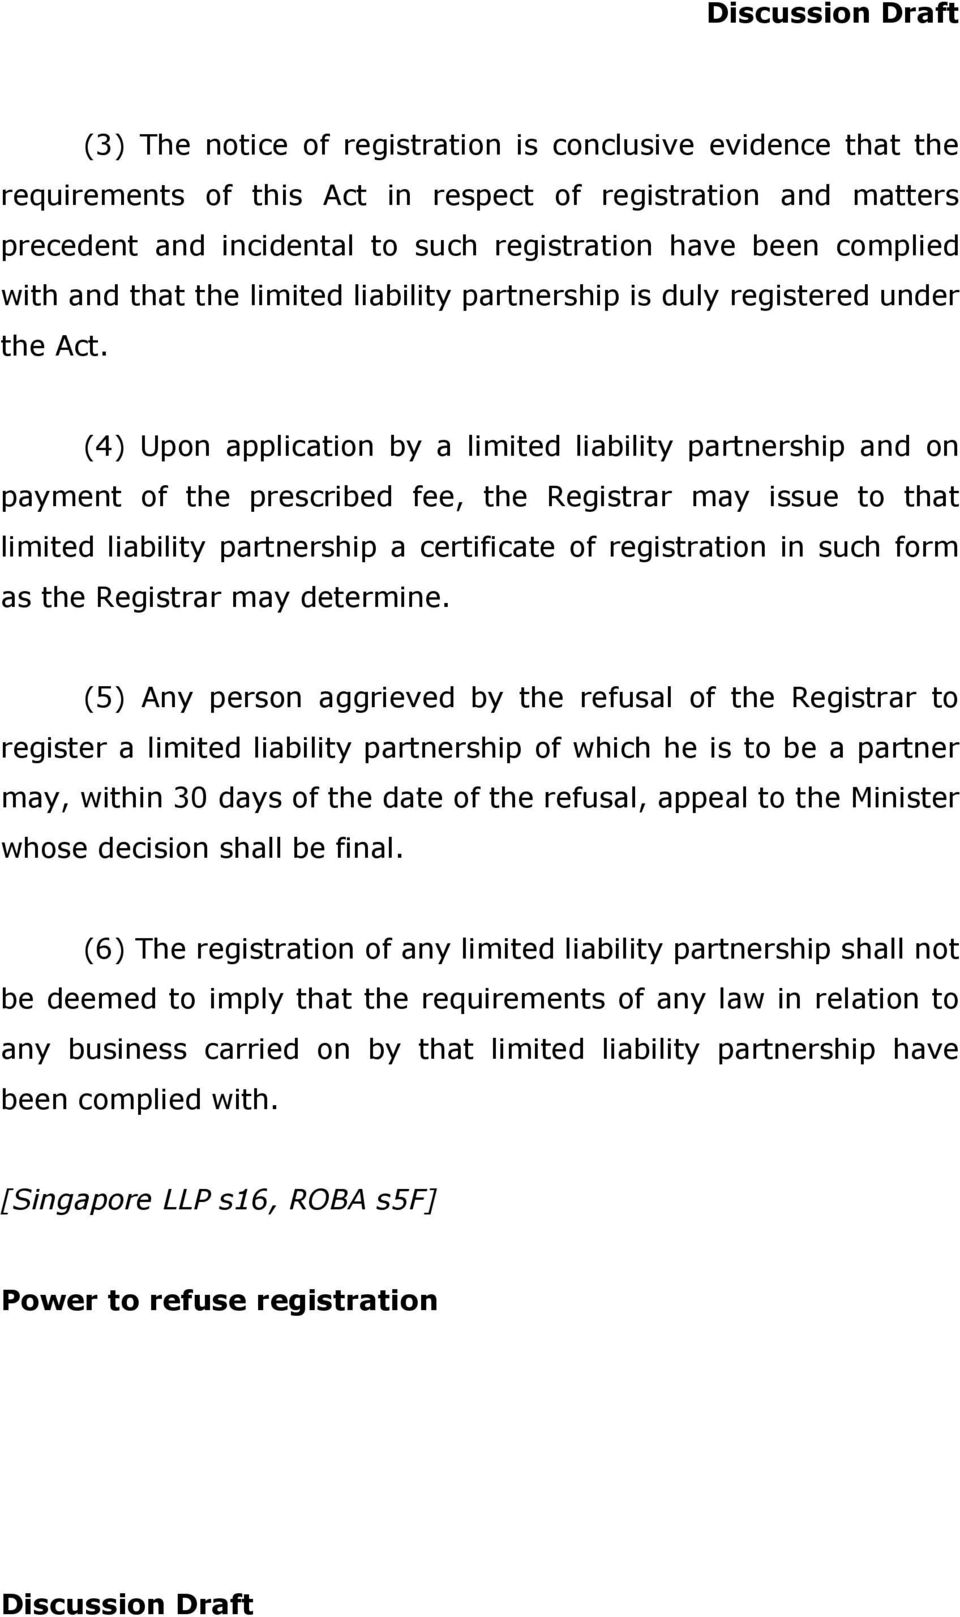 (4) Upon application by a limited liability partnership and on payment of the prescribed fee, the Registrar may issue to that limited liability partnership a certificate of registration in such form